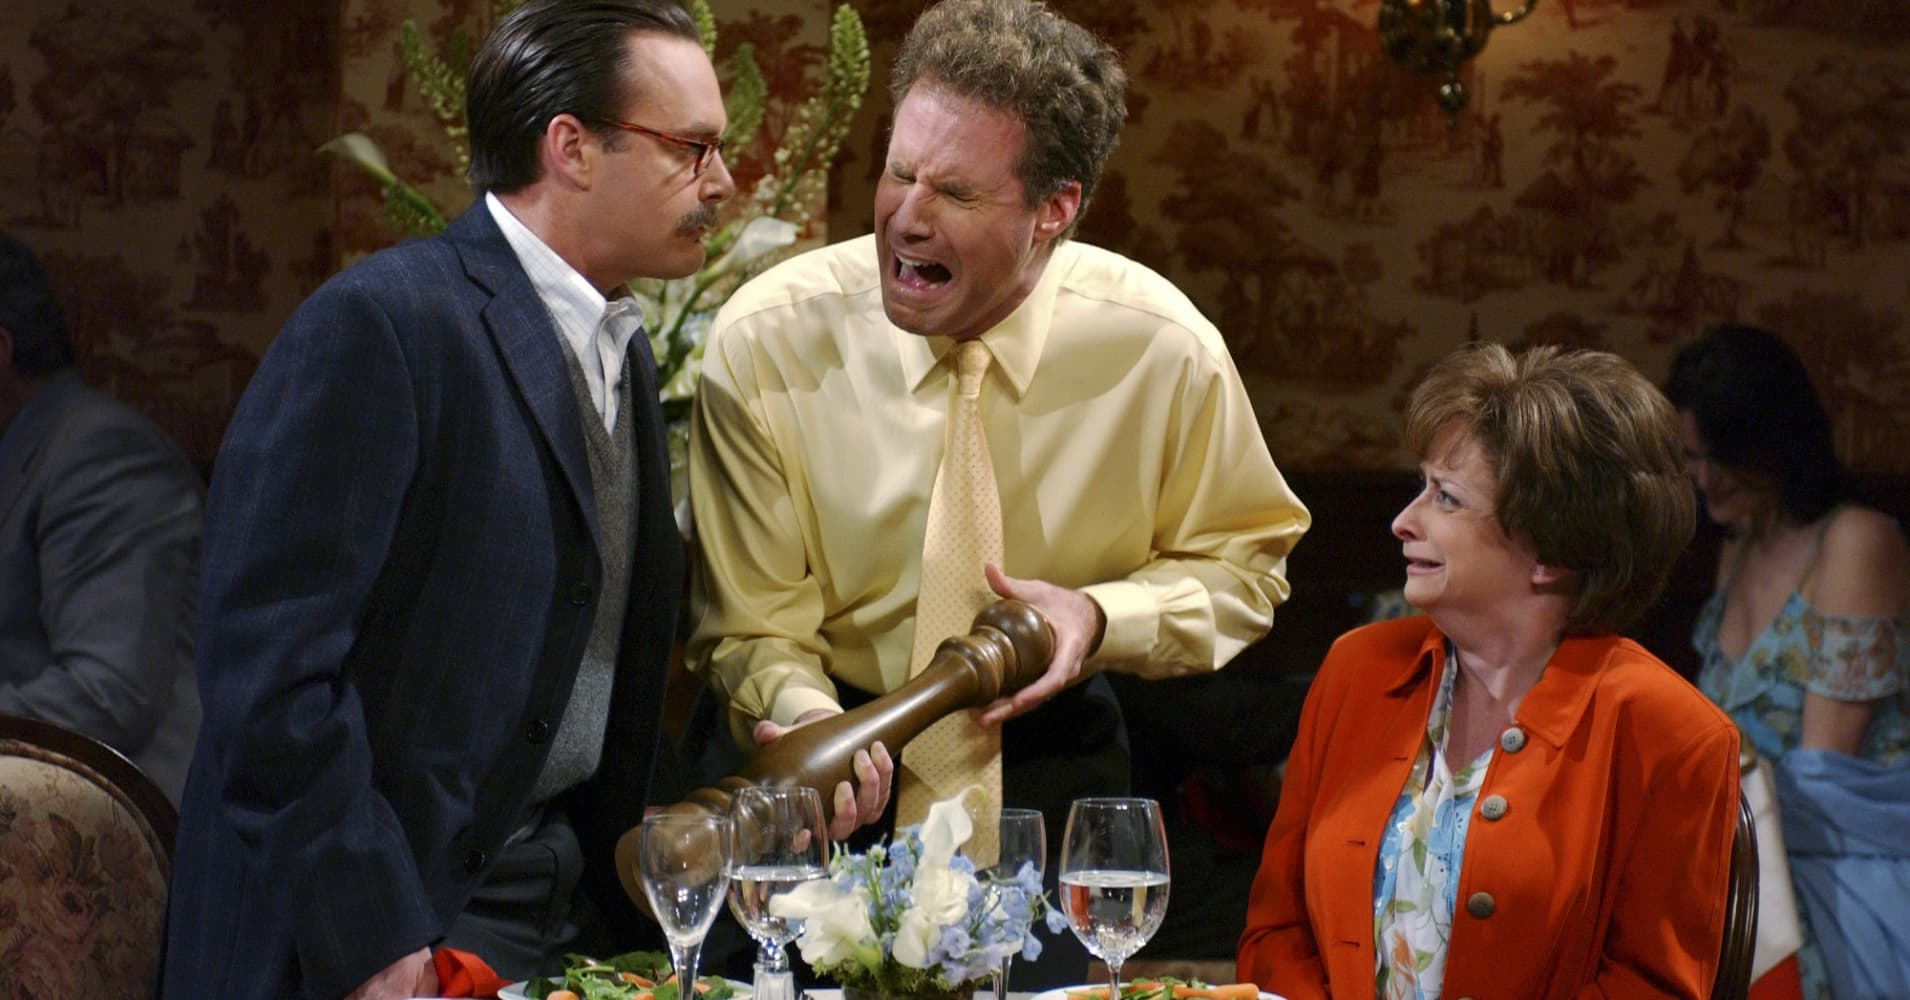 Will Forte as Lewis Roberts, Will Ferrell as Kevin, Rachel Dratch as Lewis Roberts during 'Pepper Grinder' skit on 'Saturday Night Live.'